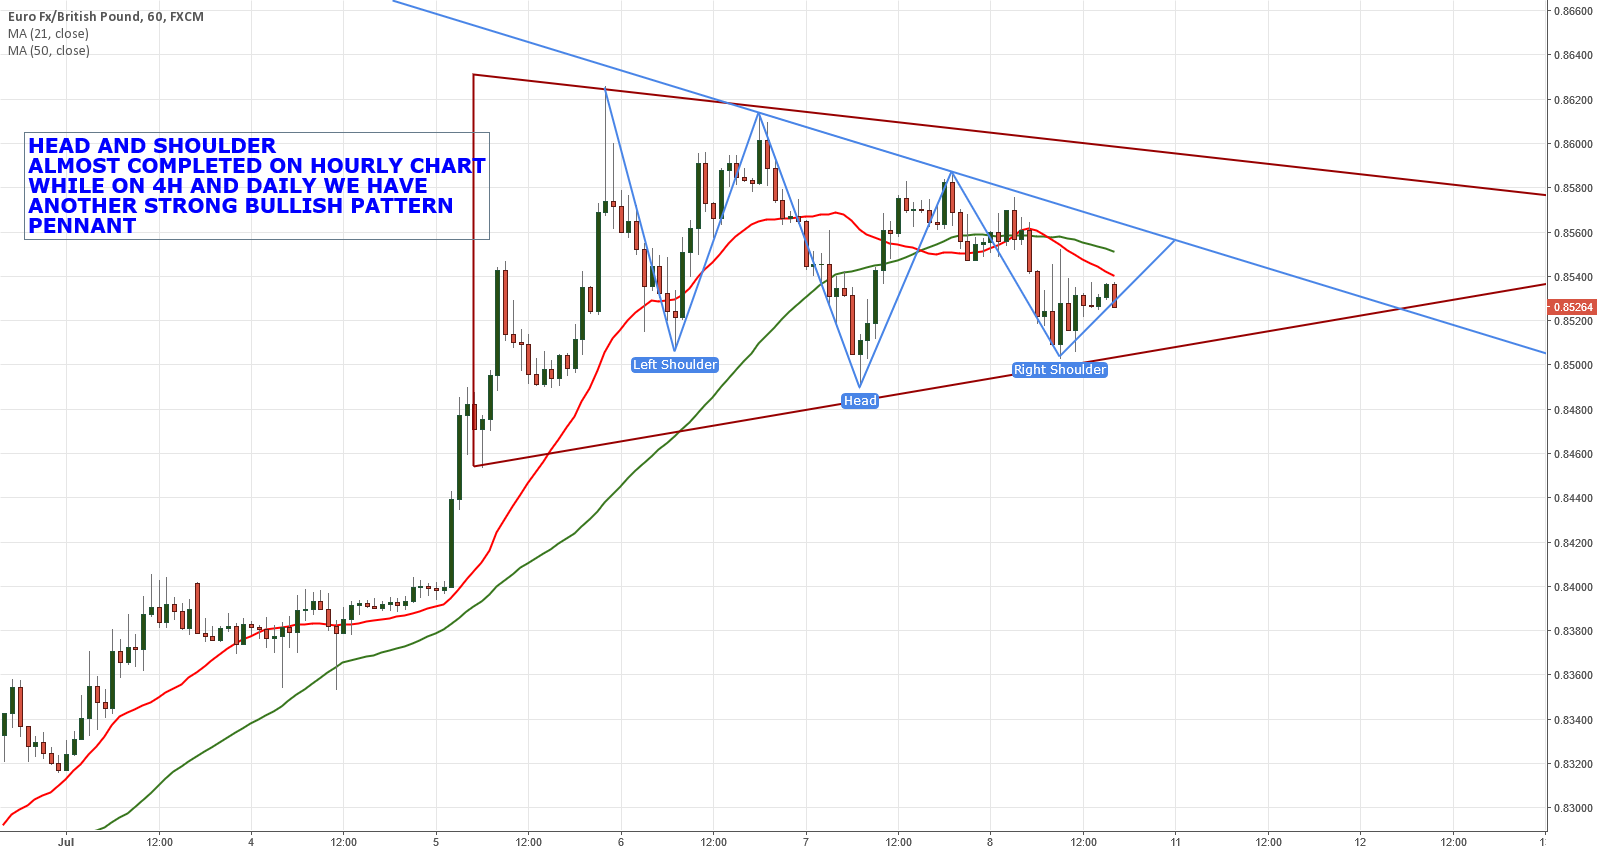 EURGBP ALSO COMPLATING HEAD AND SHOULDER IN HOURLY CHART